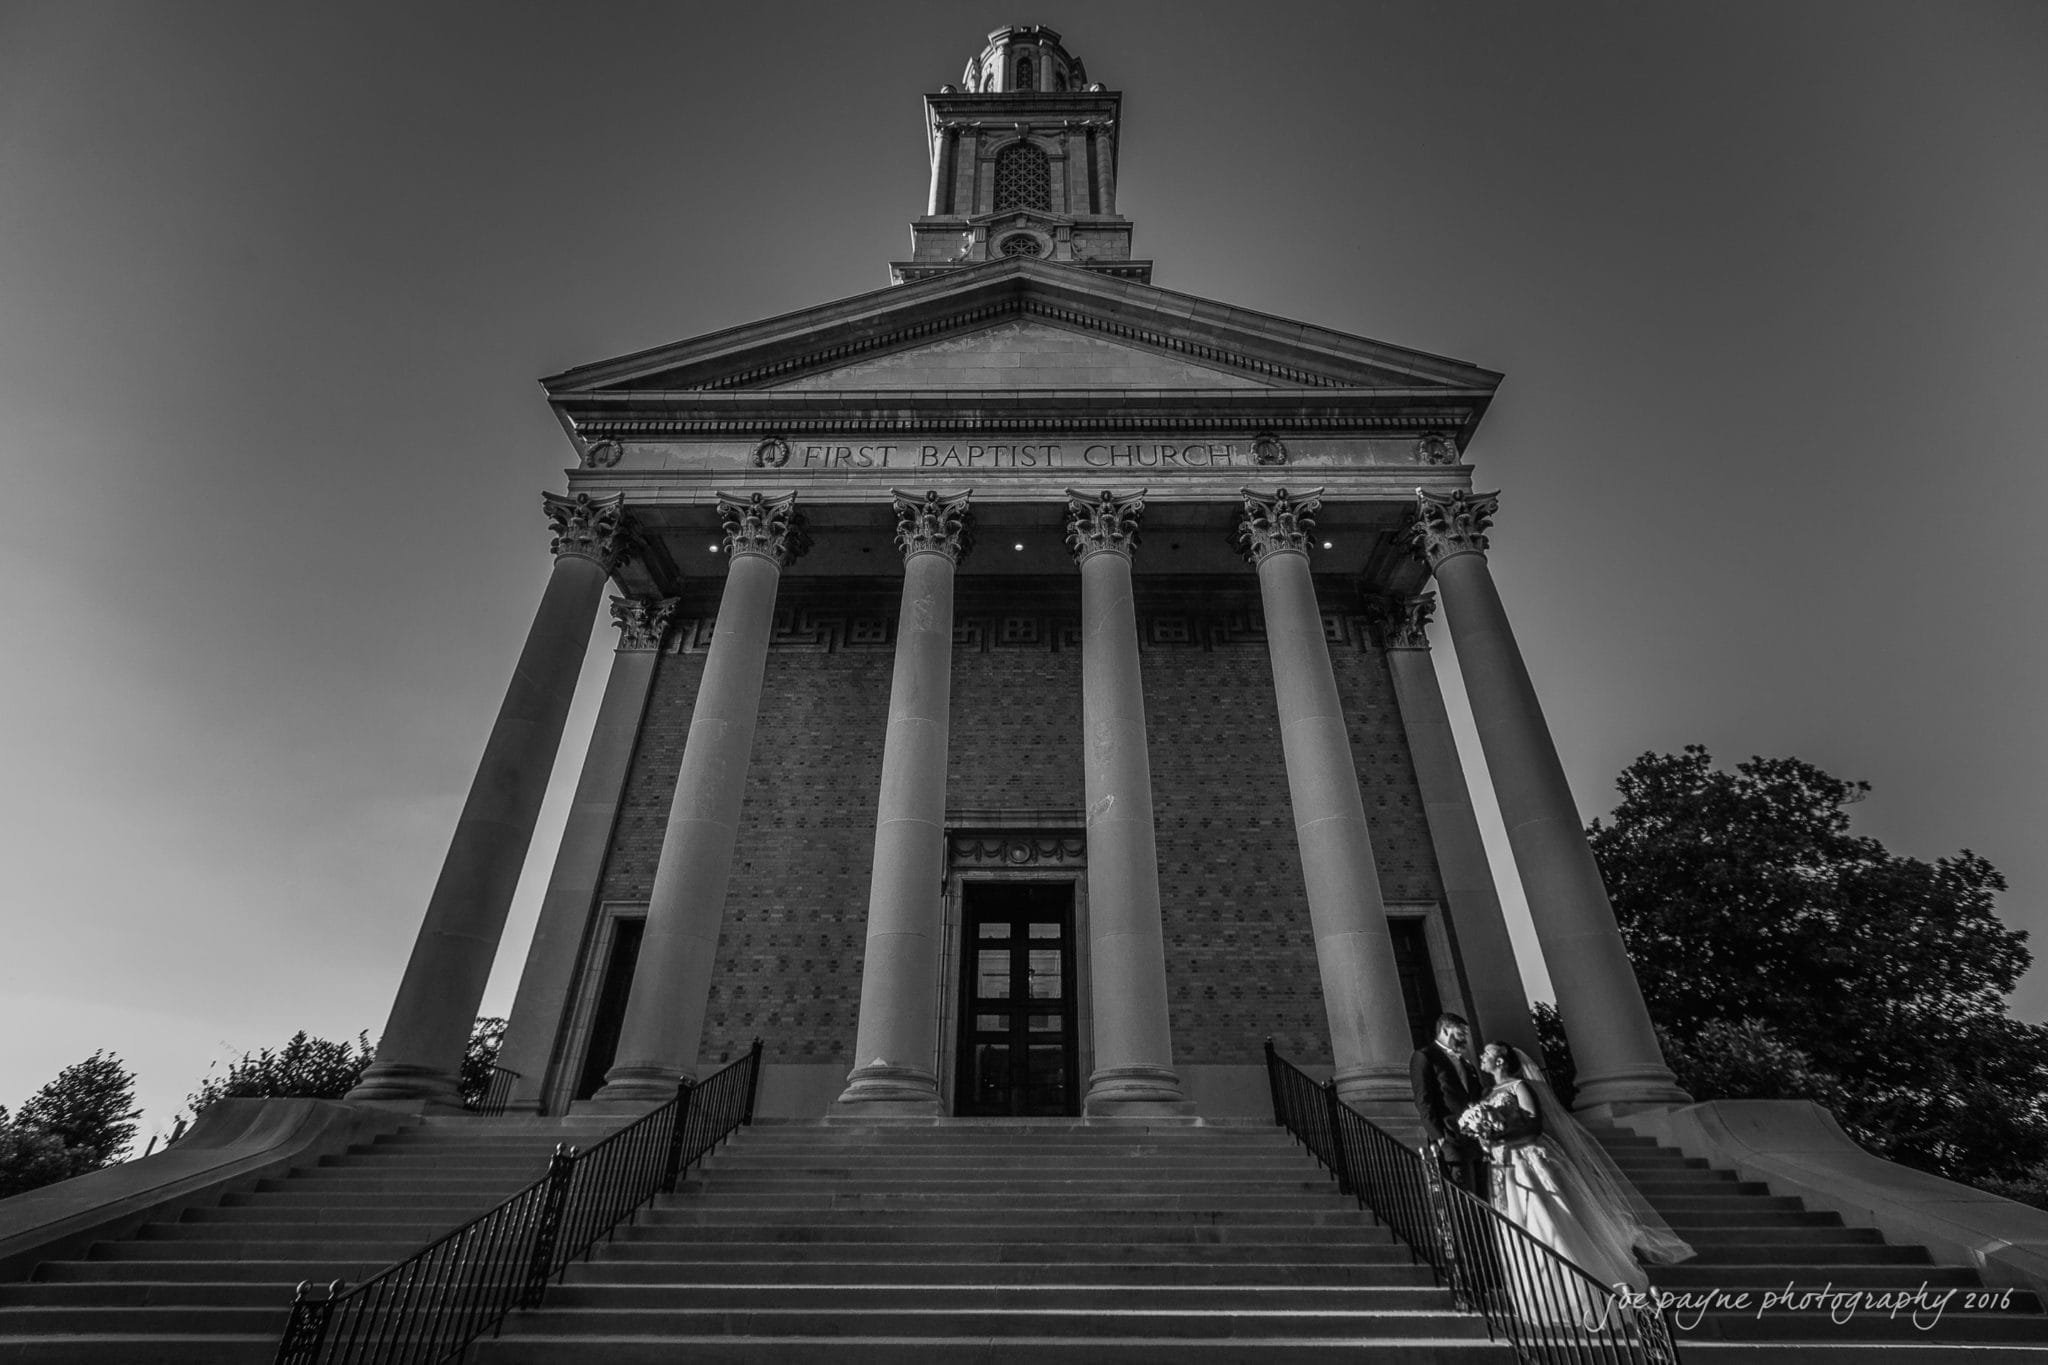 Toni & Kevin at the First Baprist Church in downtown Winston-Salem, NC. Such a beautiful place to get married! Congrats guys!